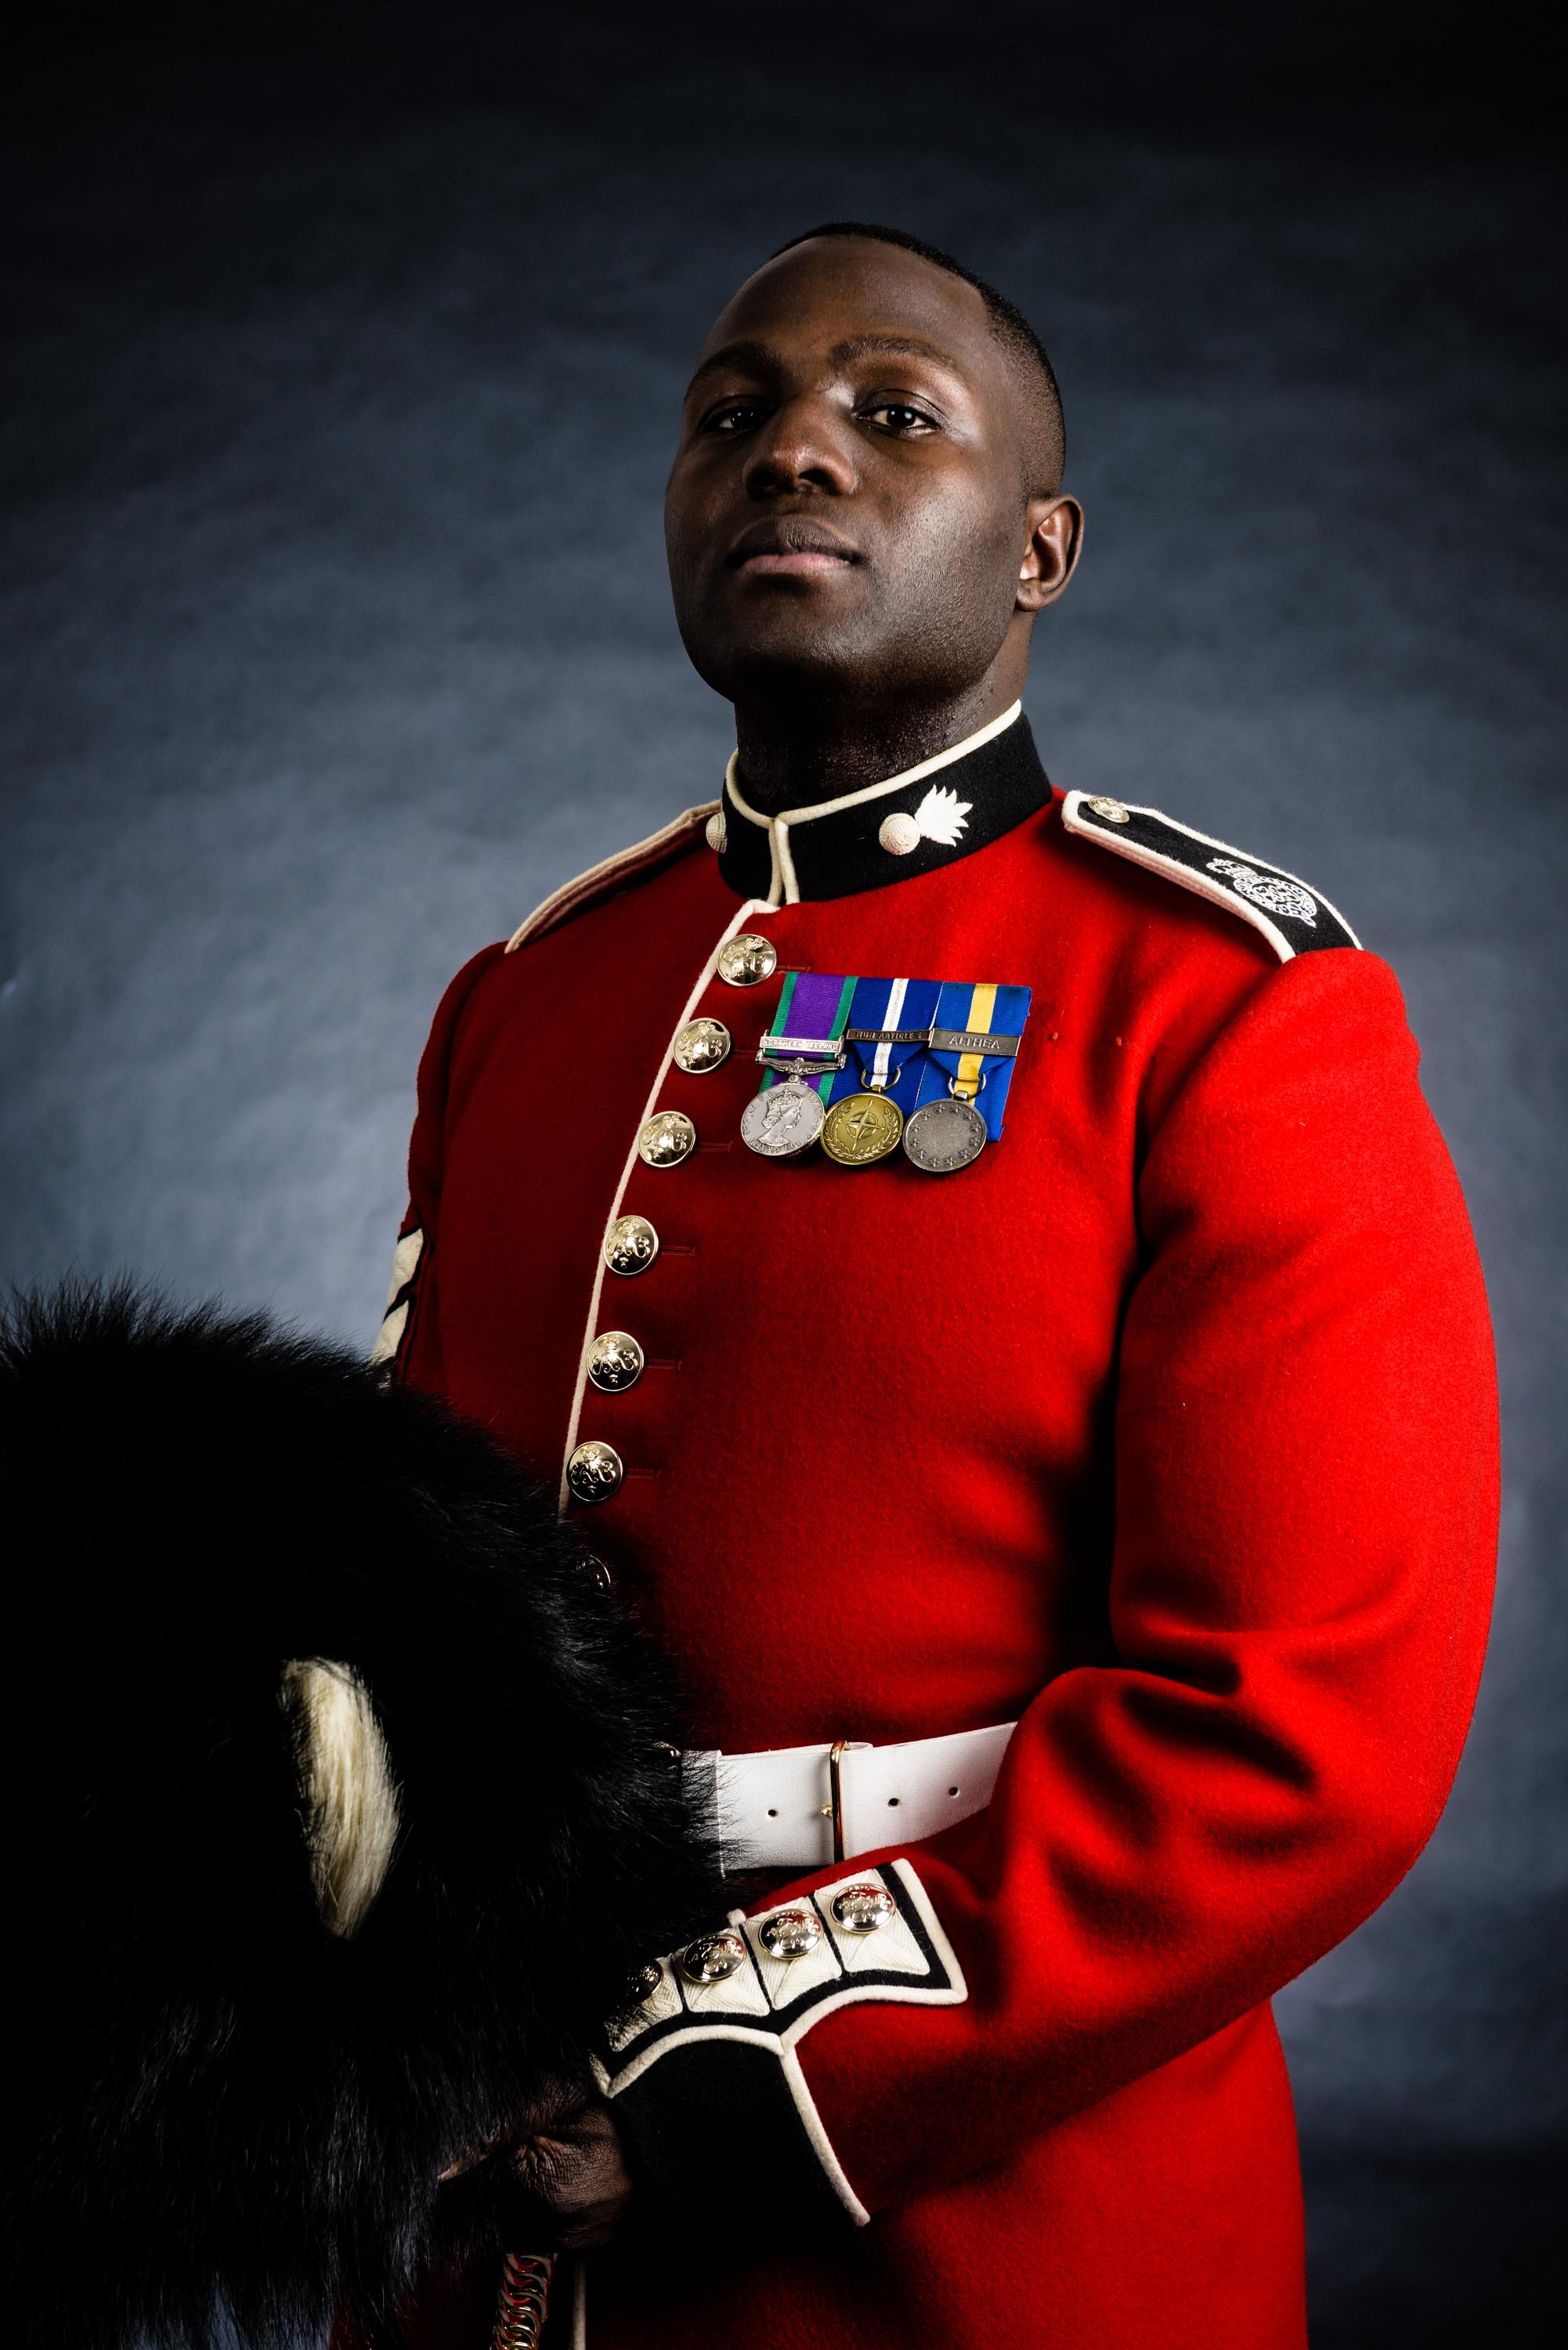 LSgt Lamin Deen of the Grenadier Guards is hoping to grab a medal for Great Britain